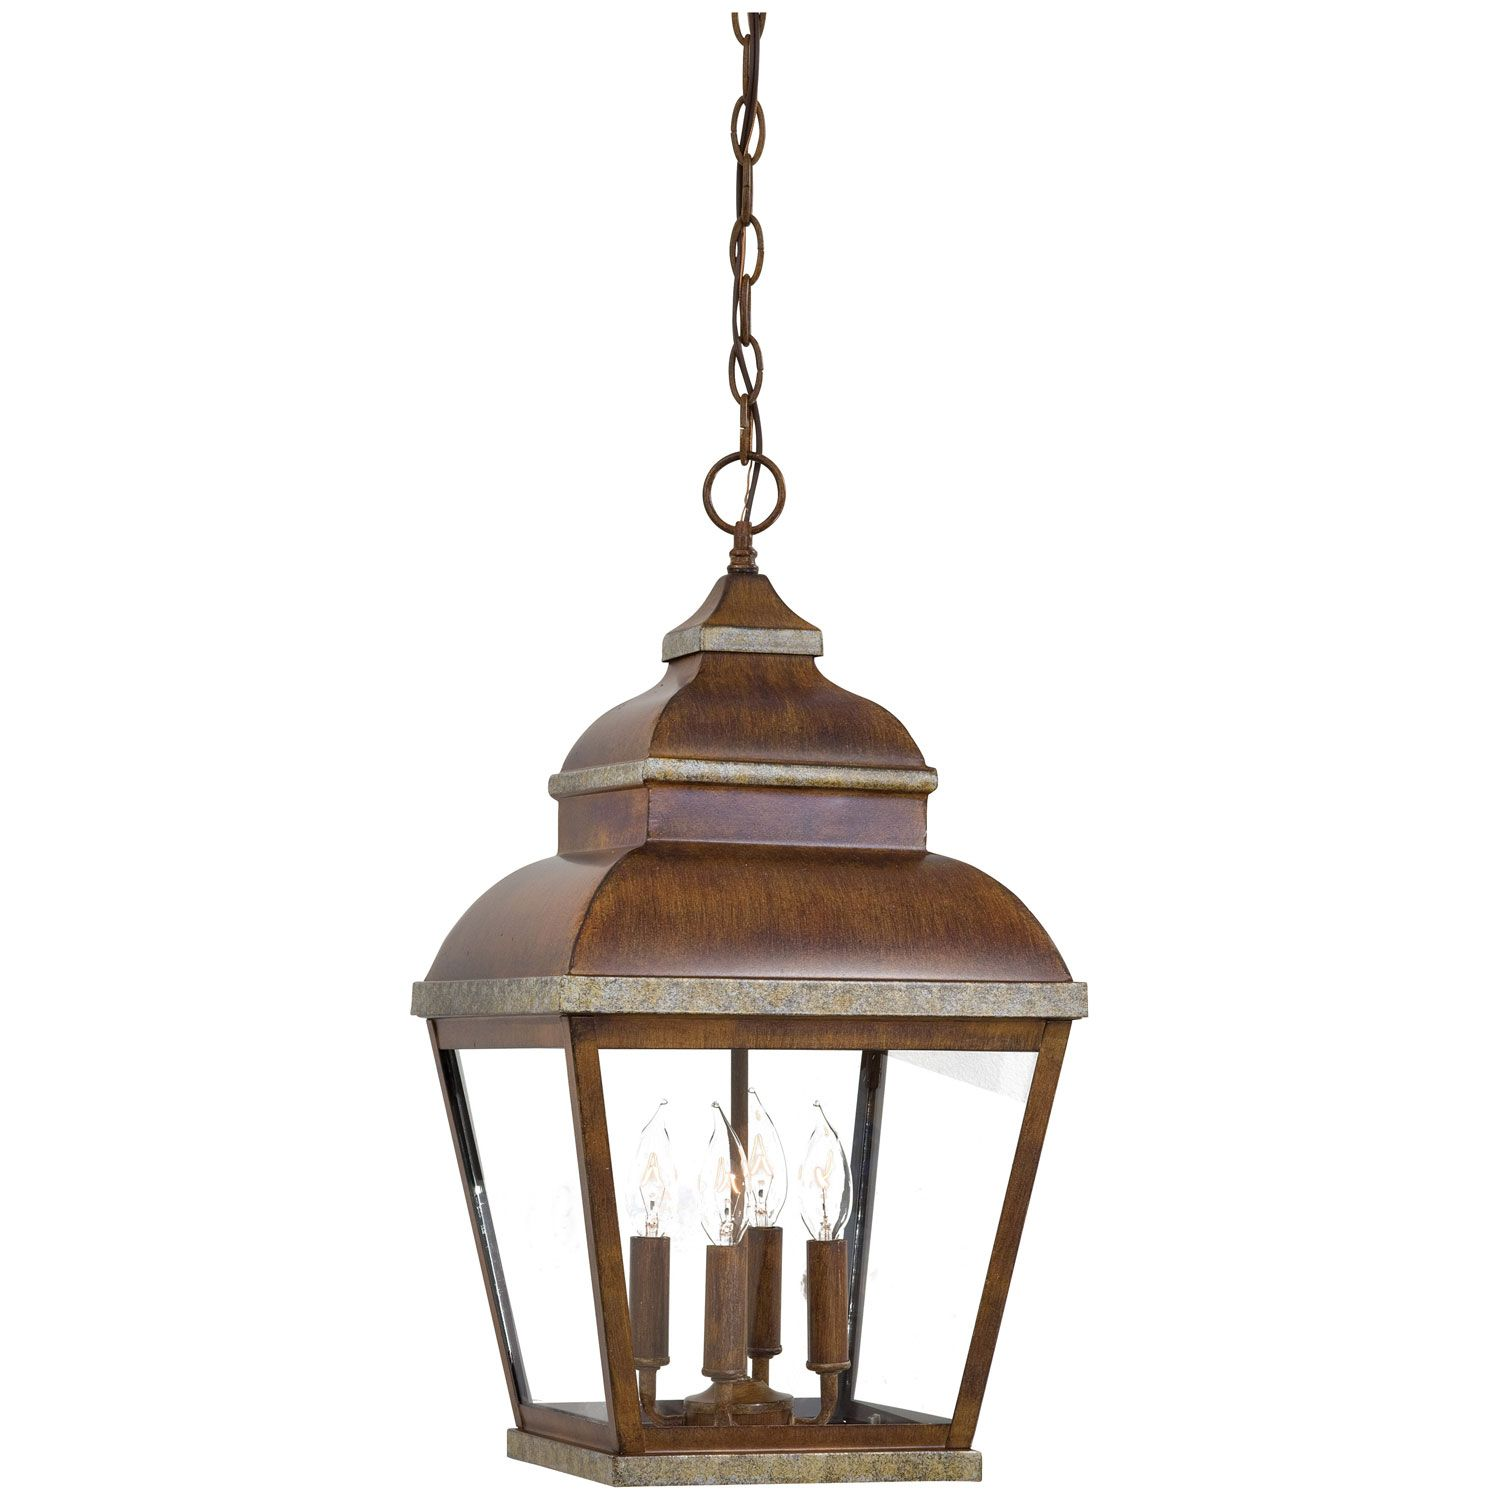 Minka Lavery Mossoro Large Outdoor Hanging Lantern 8268 161 Bellacor Outdoor Hanging Lanterns Outdoor Ceiling Lights Hanging Lanterns